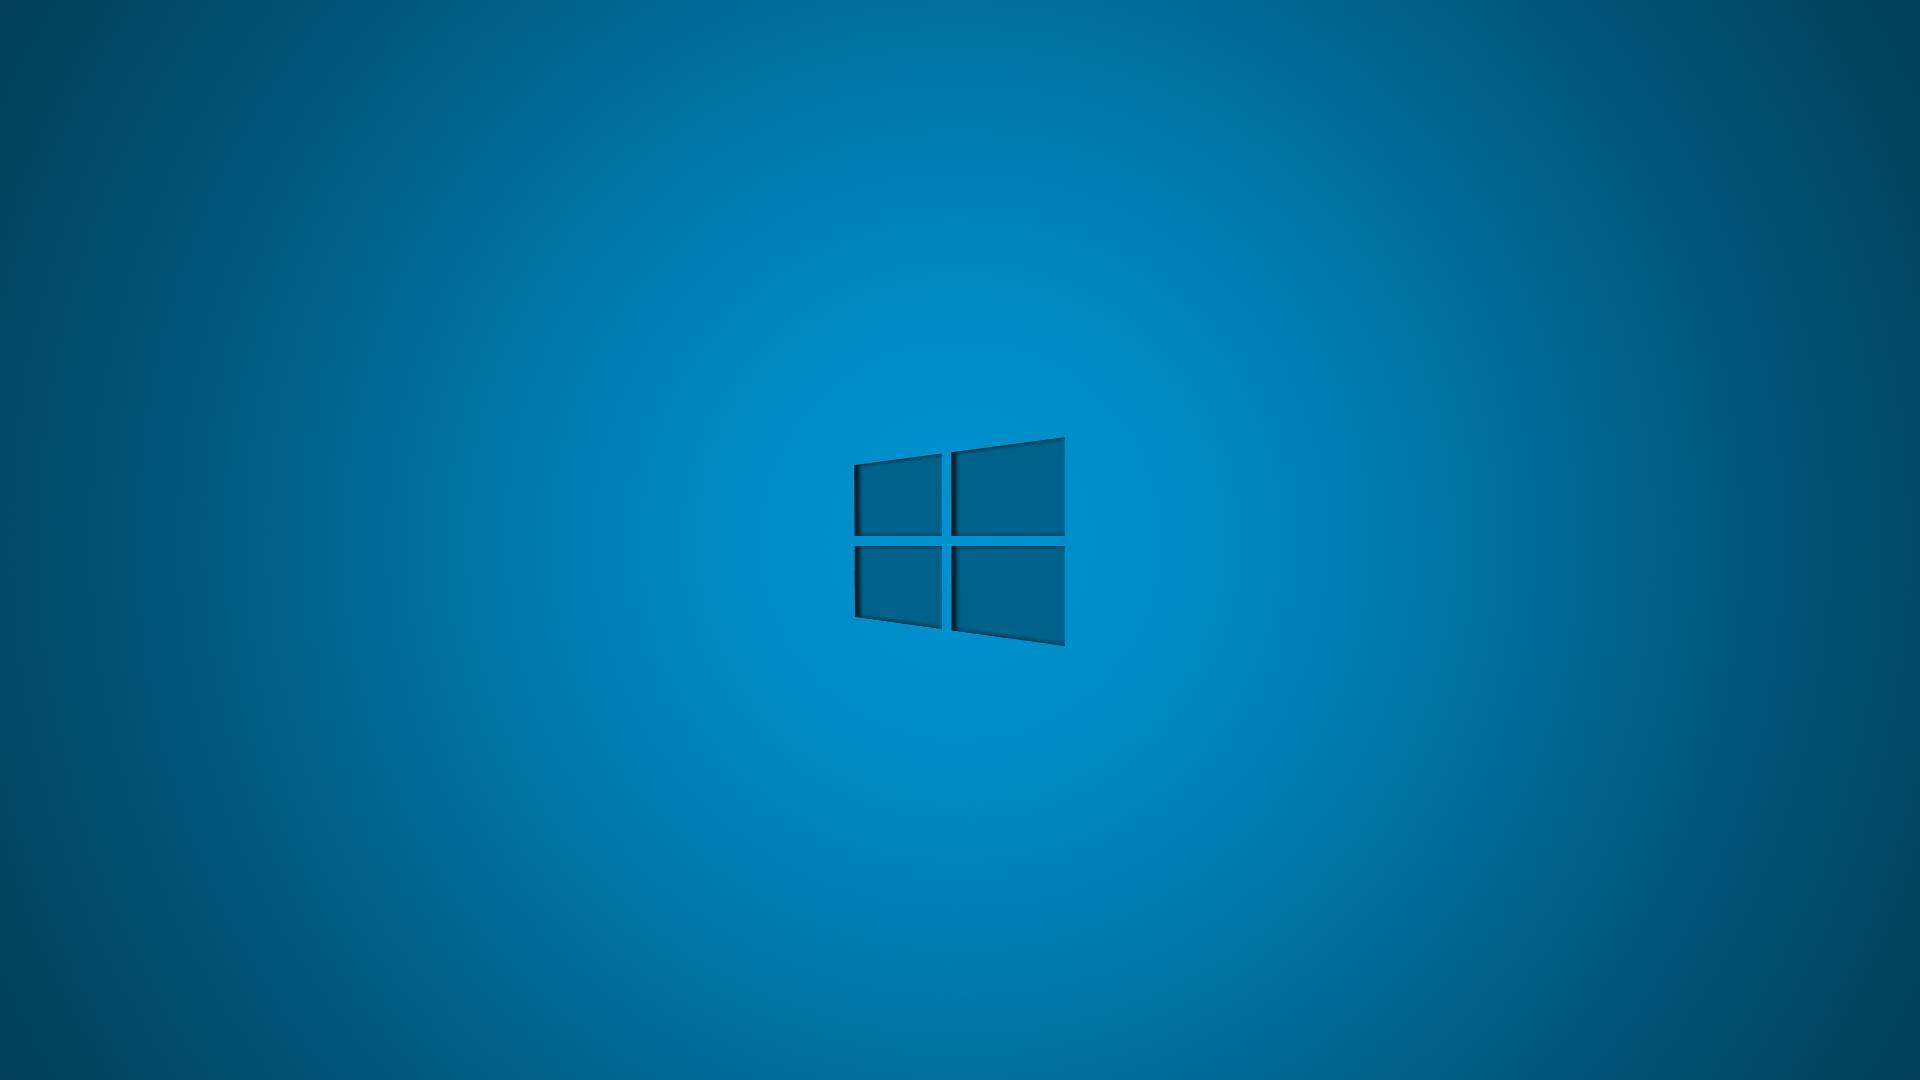 Windows 10 Wallpaper HD 1080p